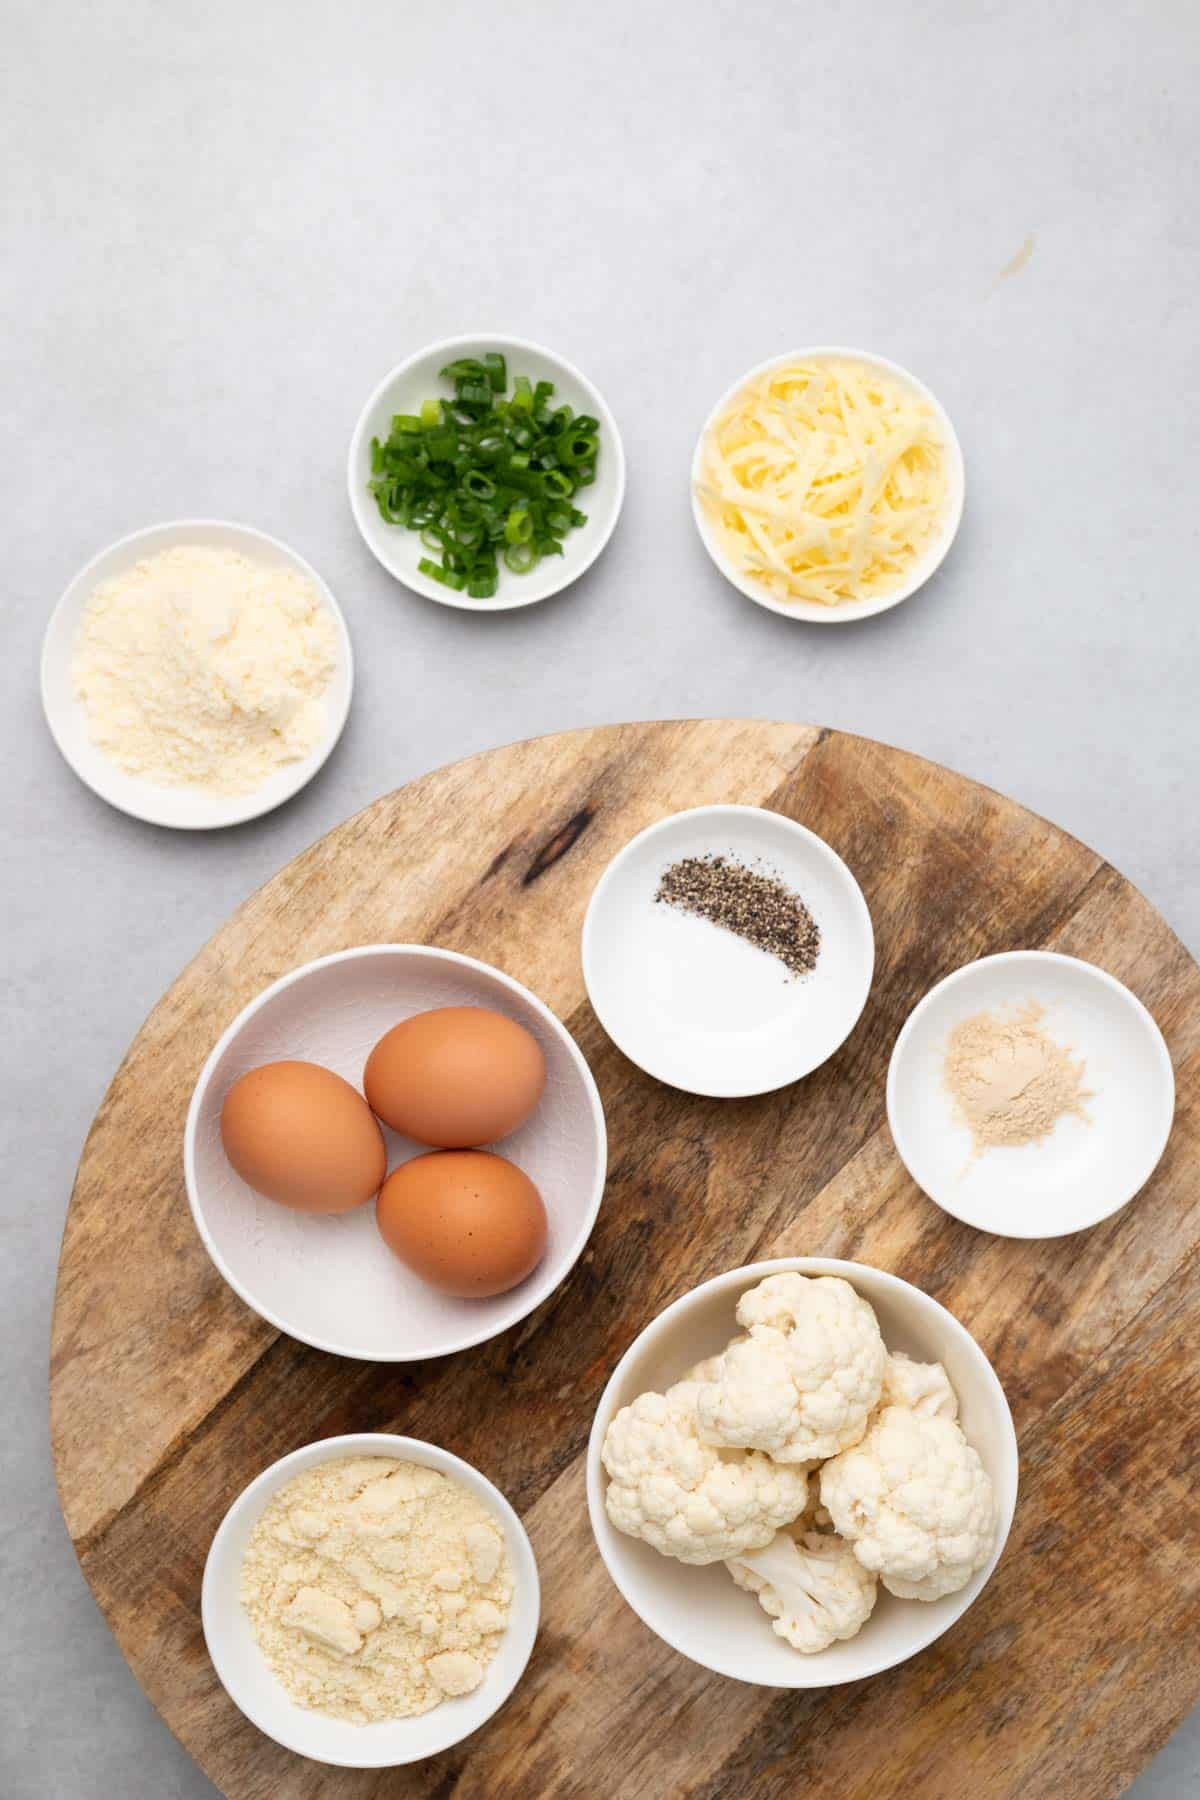 ingredients laid out on a wooden board